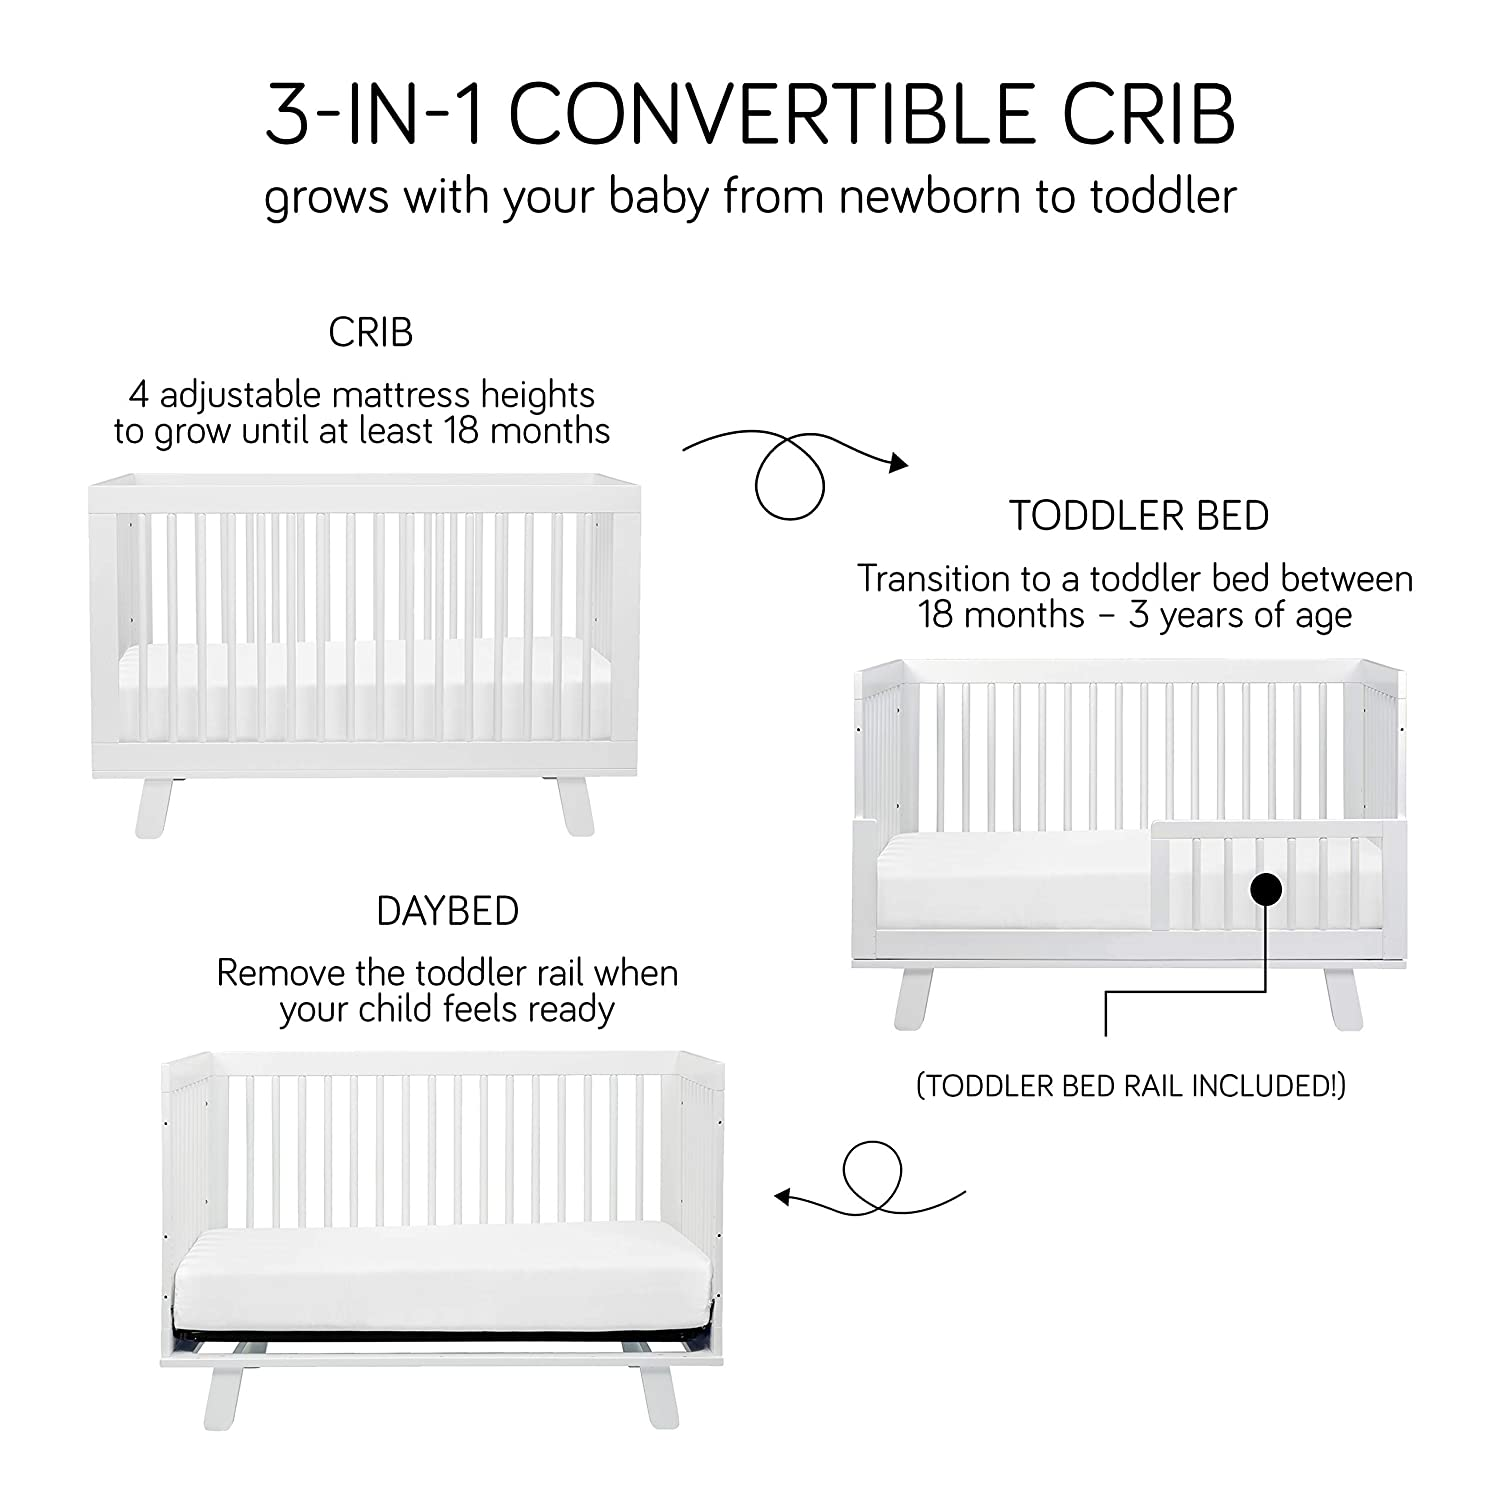 Babyletto convertible crib - converts from crib into toddler bed